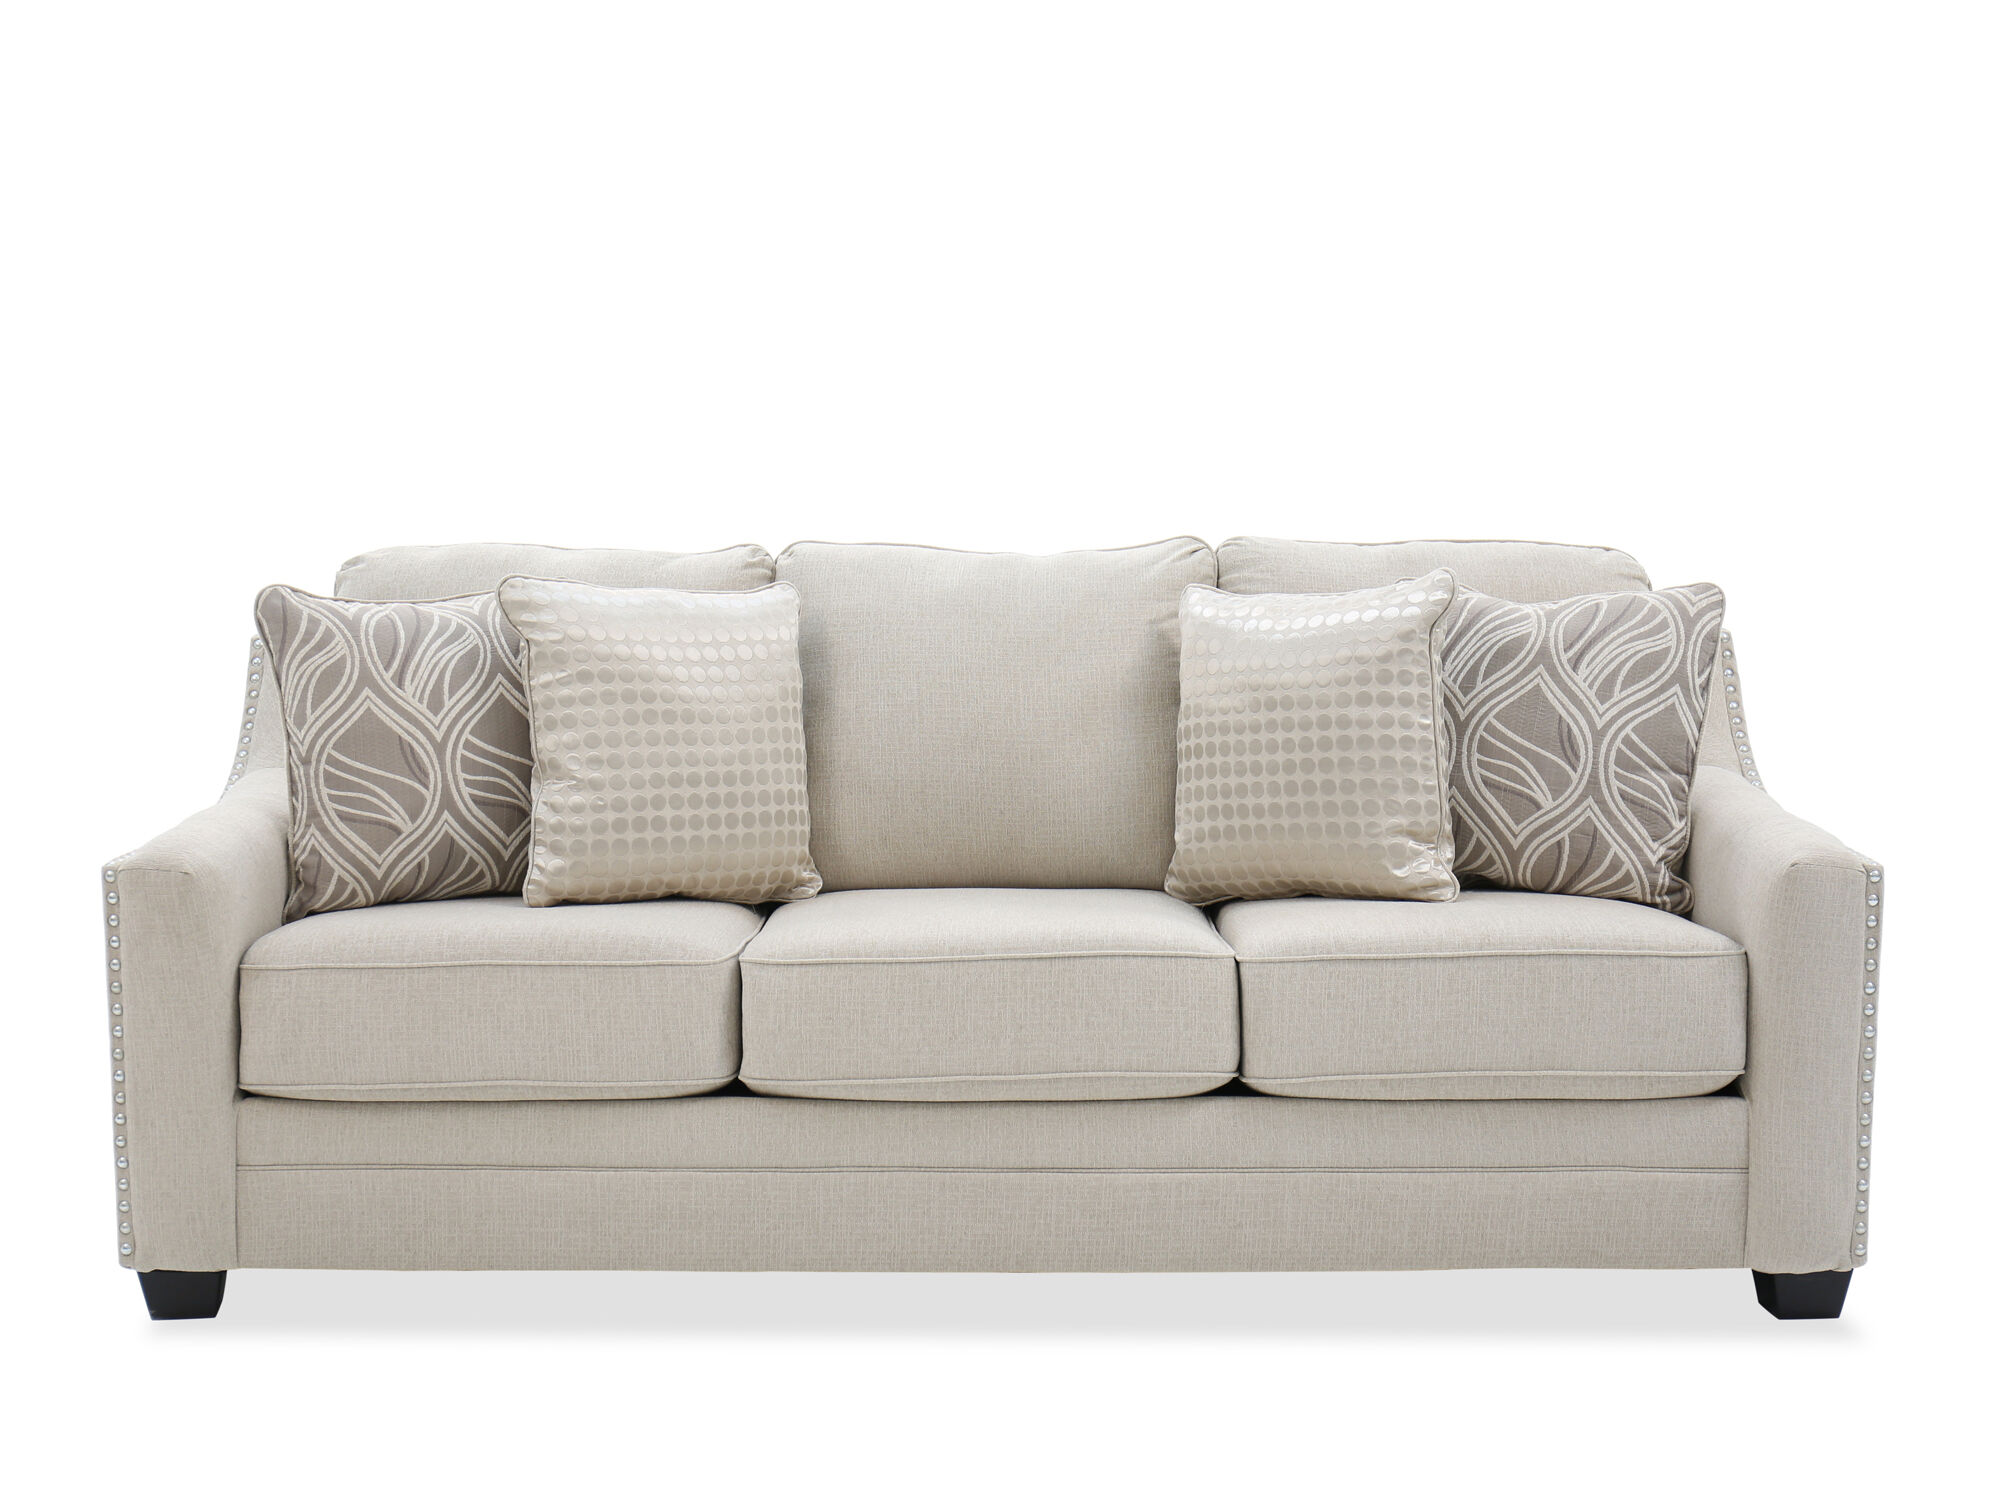 Big Sofa Hudson Big Sofa Hudson Great Straight Arm Uquot Sofa With Big Sofa